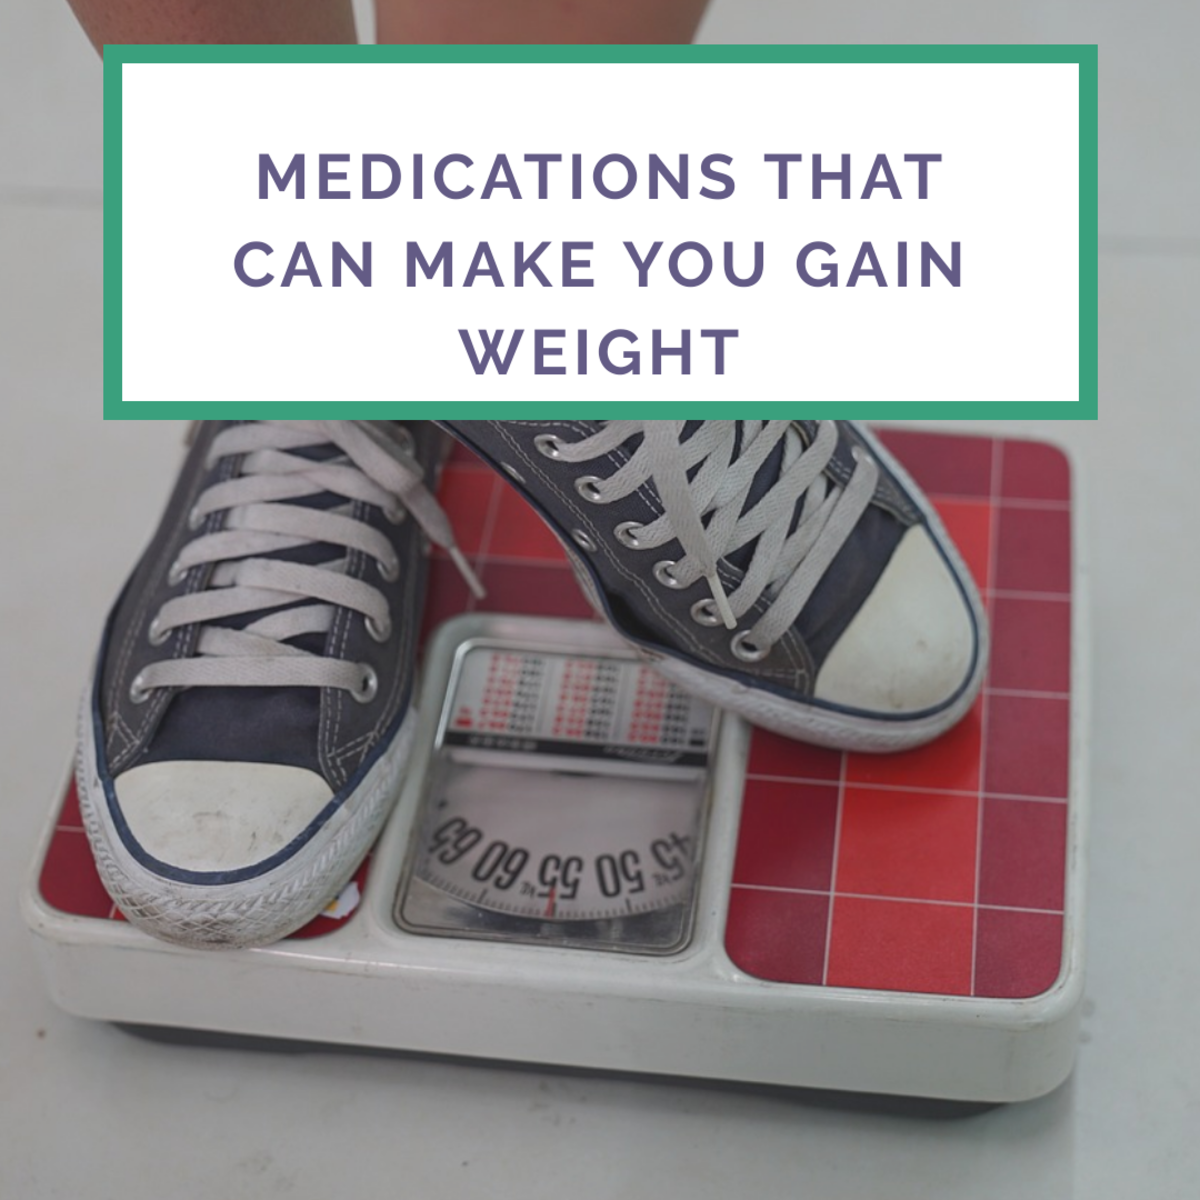 Medicines That Can Make You Gain Weight